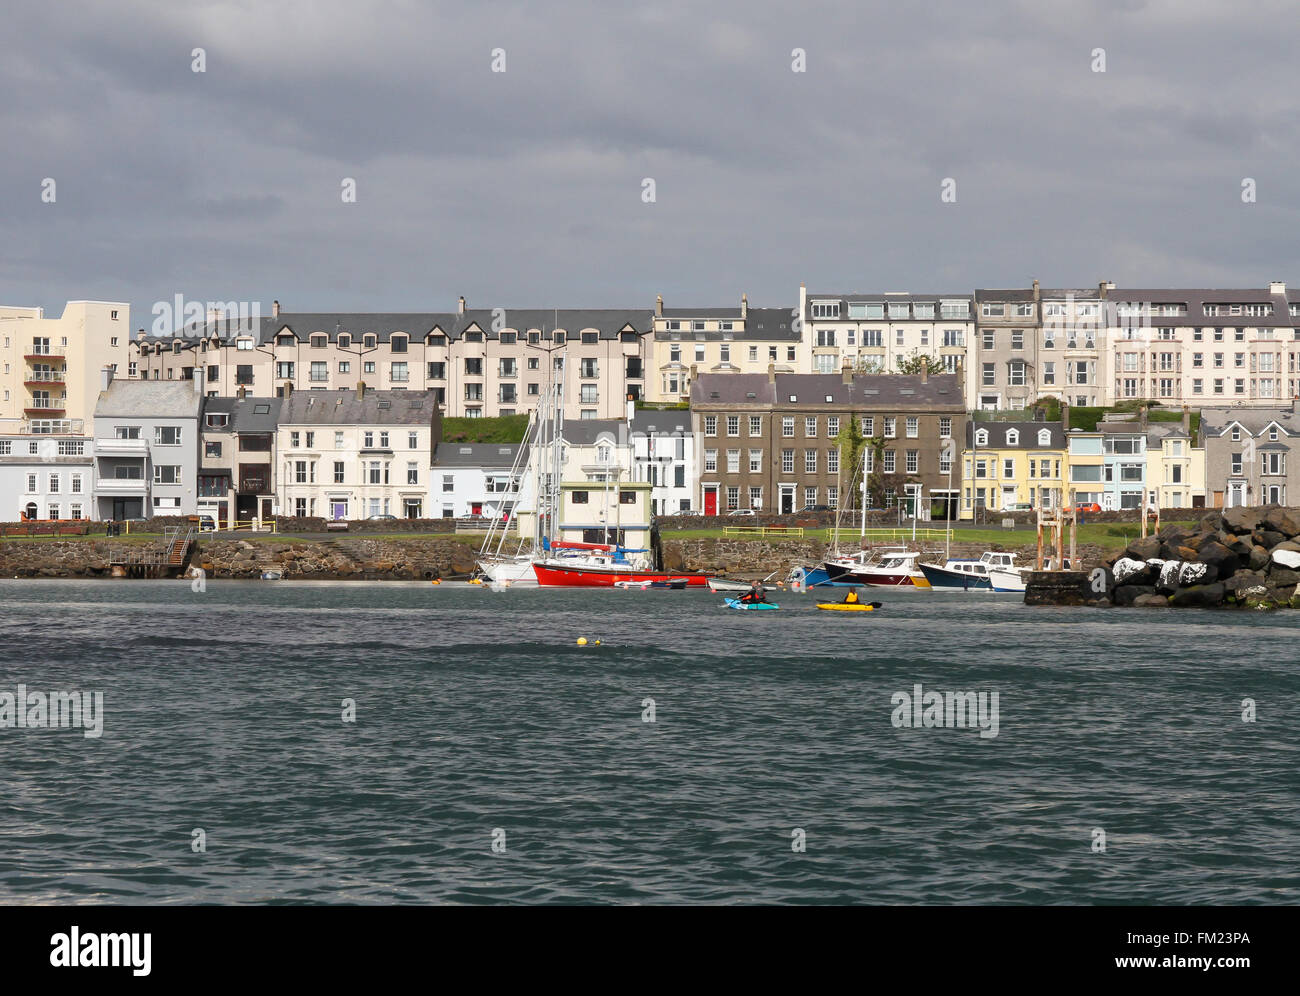 Houses and accommodation overlooking boats in Portrush Harbour at Portrush, County Antrim, Northern Ireland Stock Photo